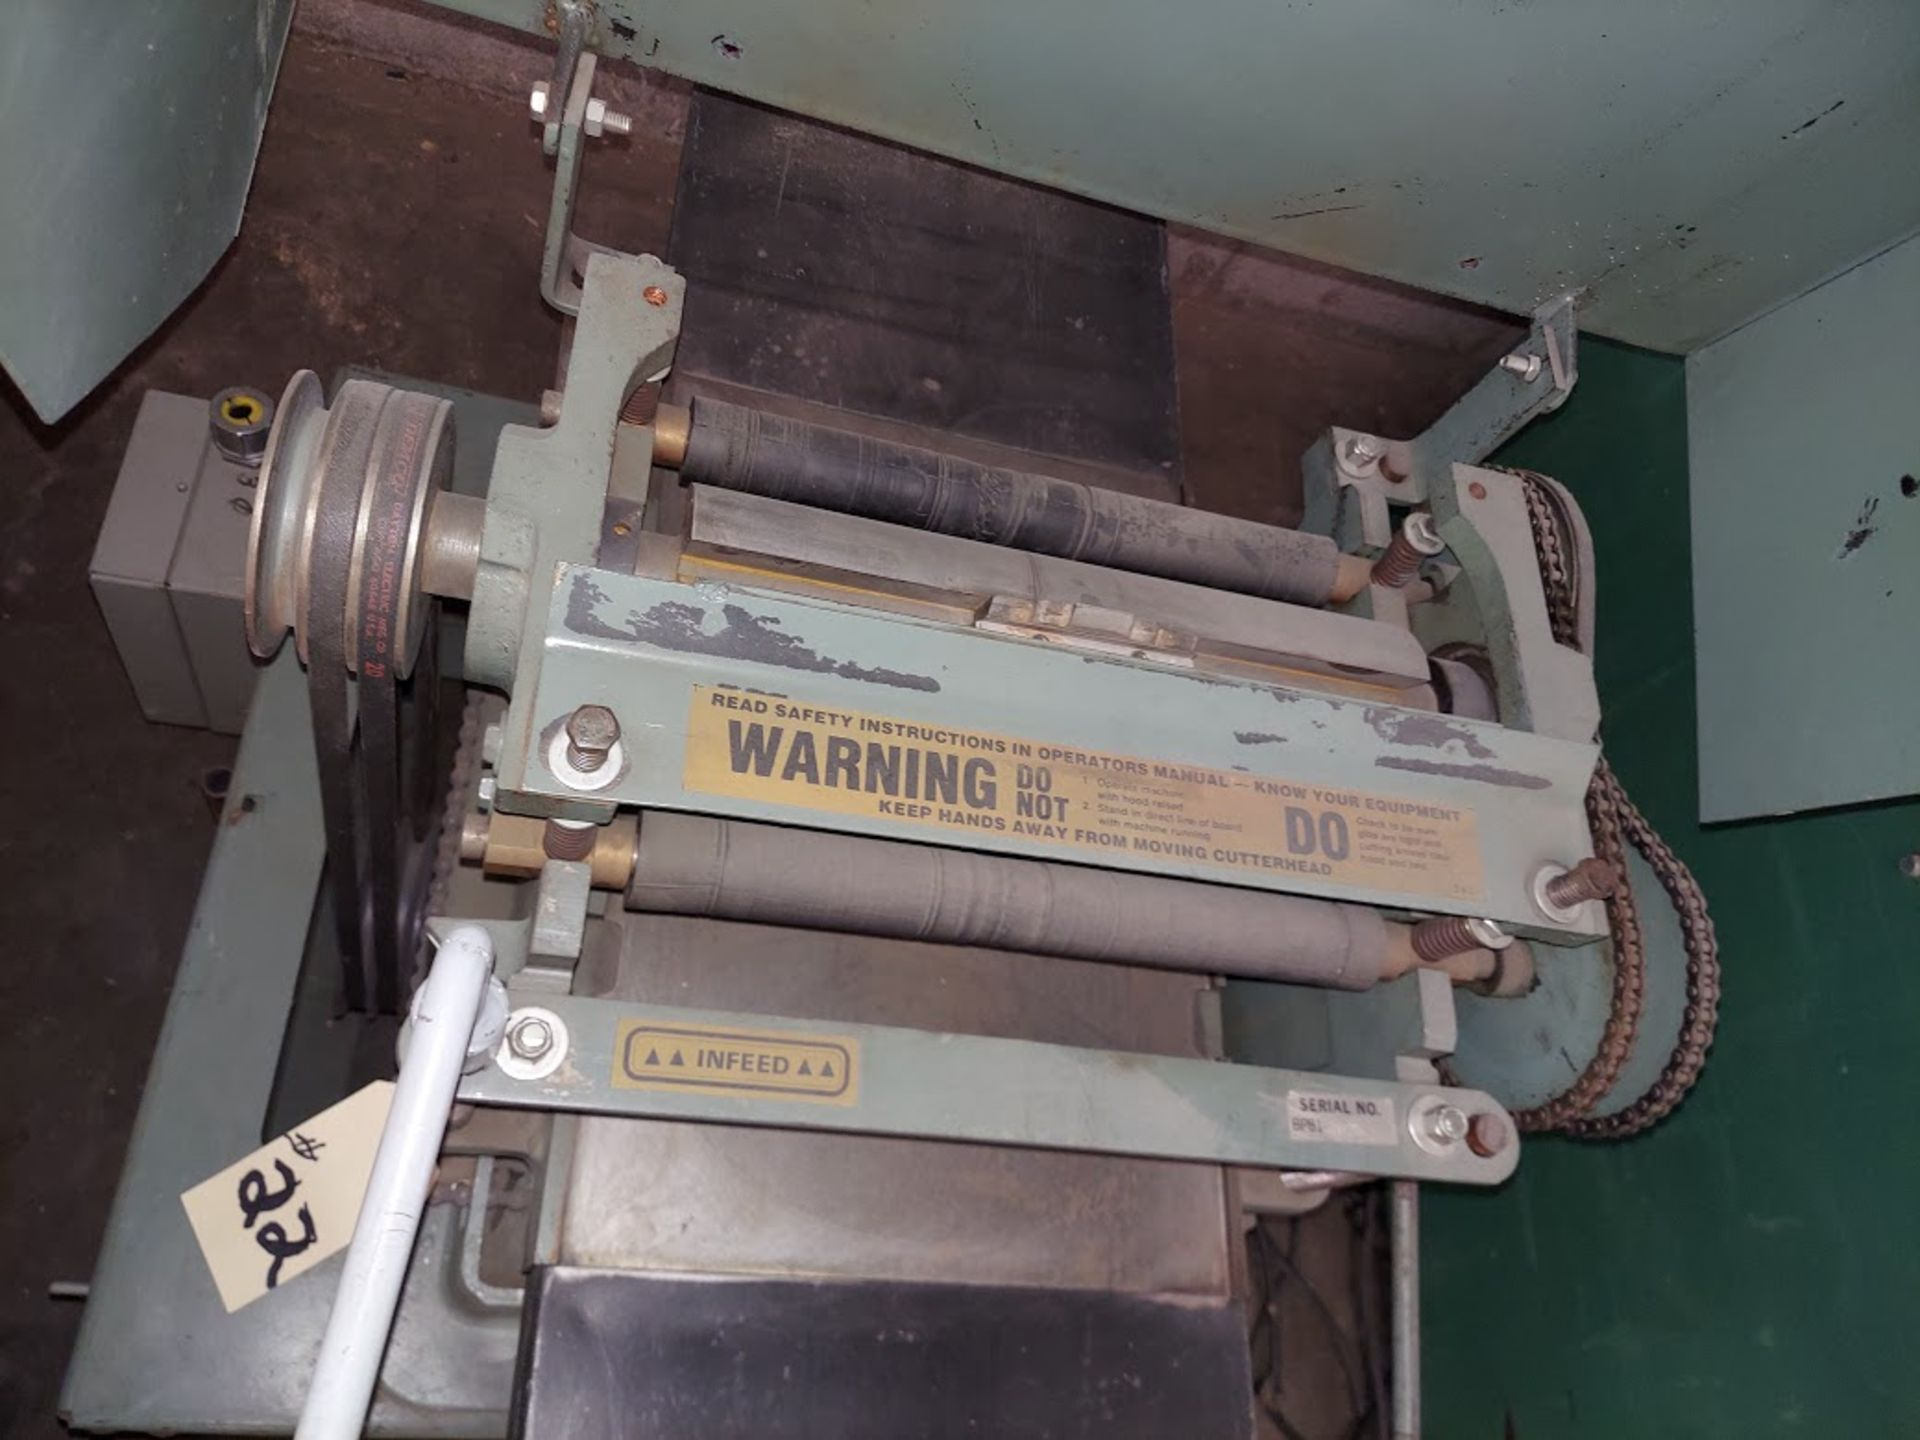 Foley Belsaw Molder Planer, 220 Volts 3 Phase Motor, Model # 9123 - Image 4 of 4